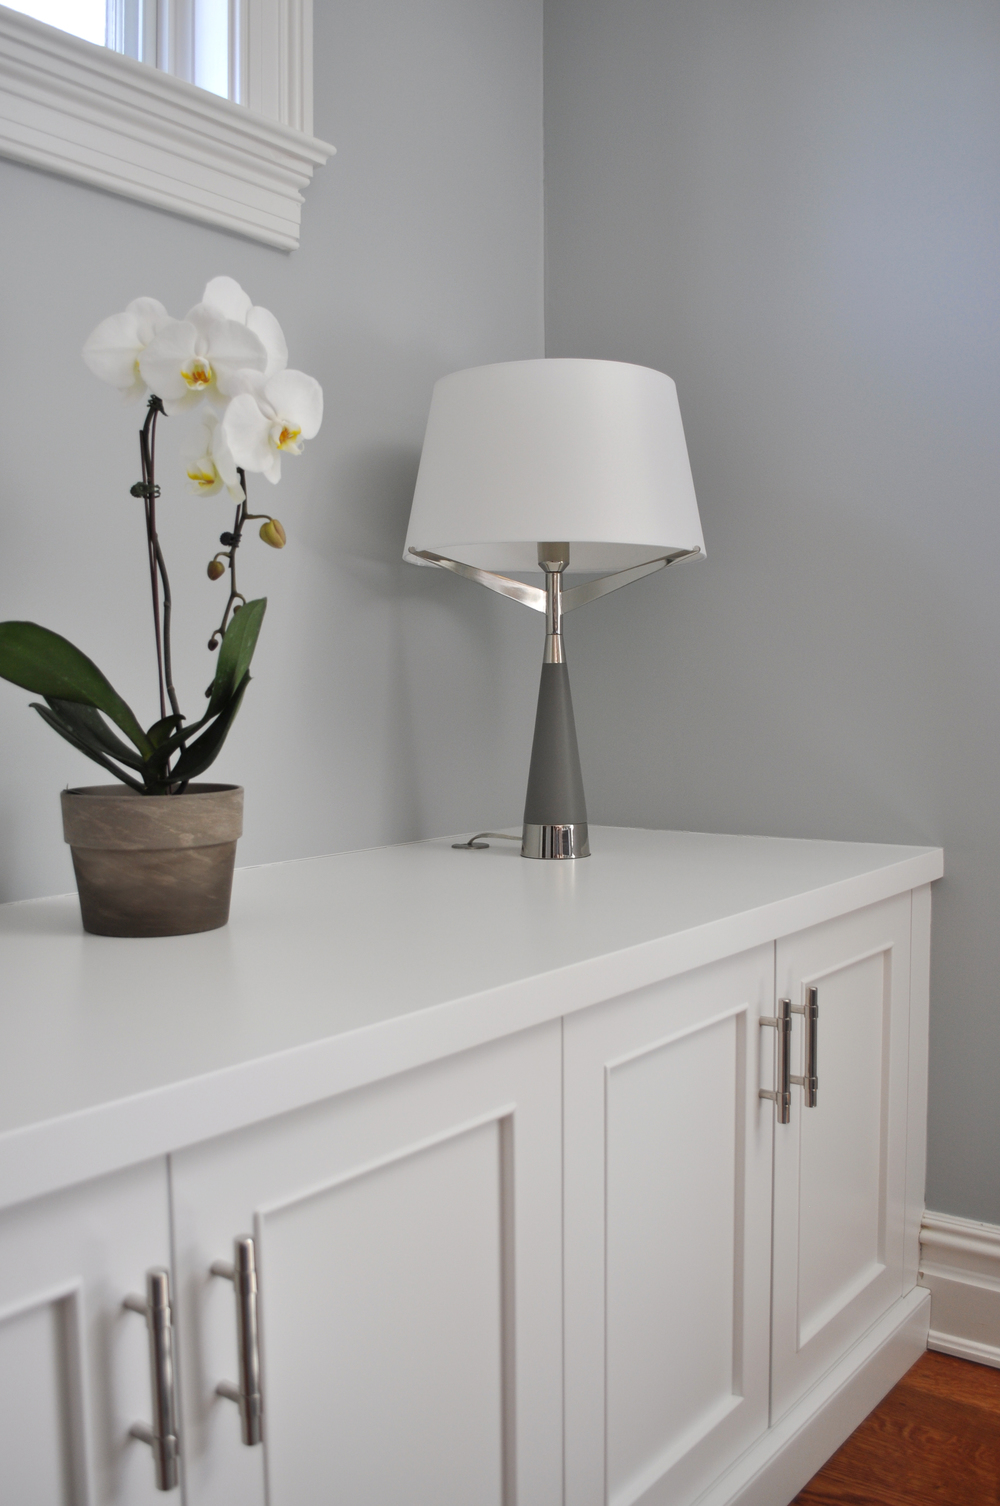 KAM DESIGN_Mamaroneck NY_Contemporary Family Room_Close-up_Custom White Painted Millwork_Arteriors Table Lamp_Interior Designer Kim A Mitchell_2016 for Web.jpg